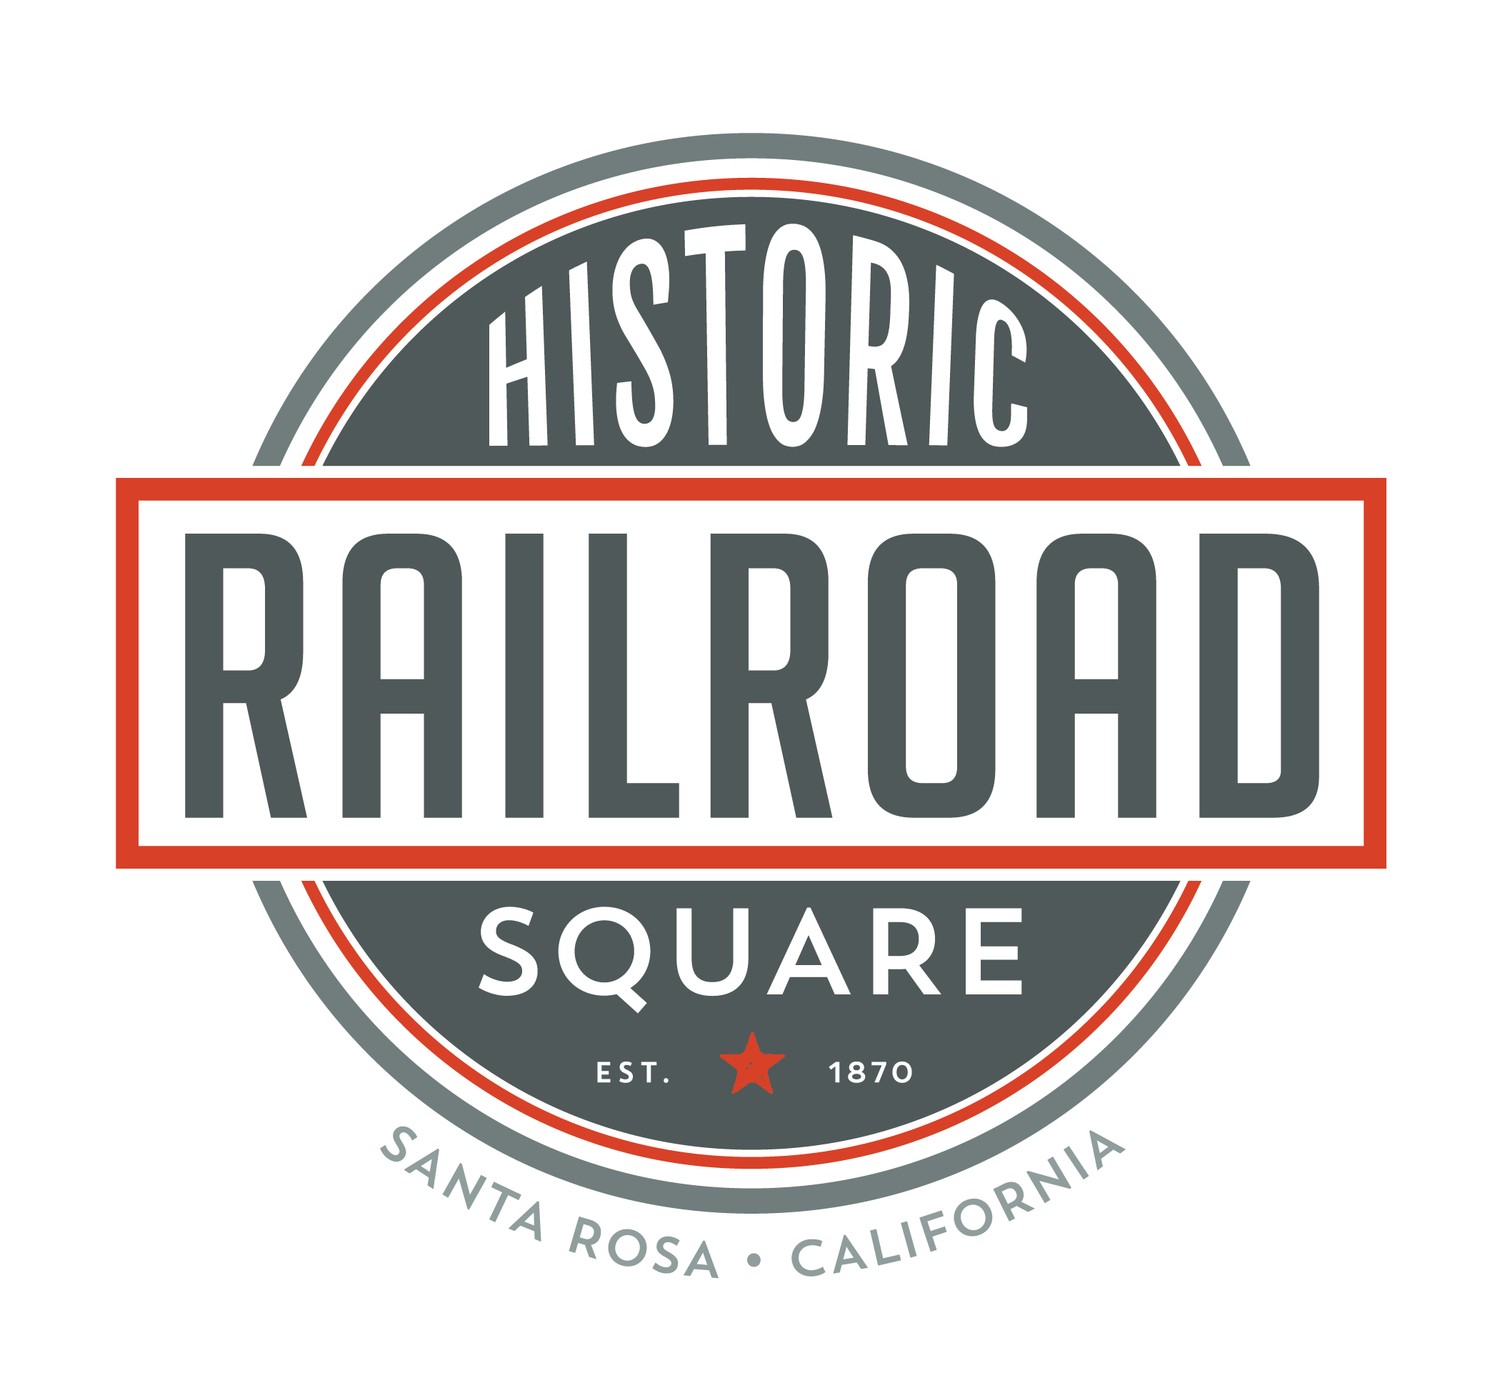 HISTORIC RAILROAD SQUARE